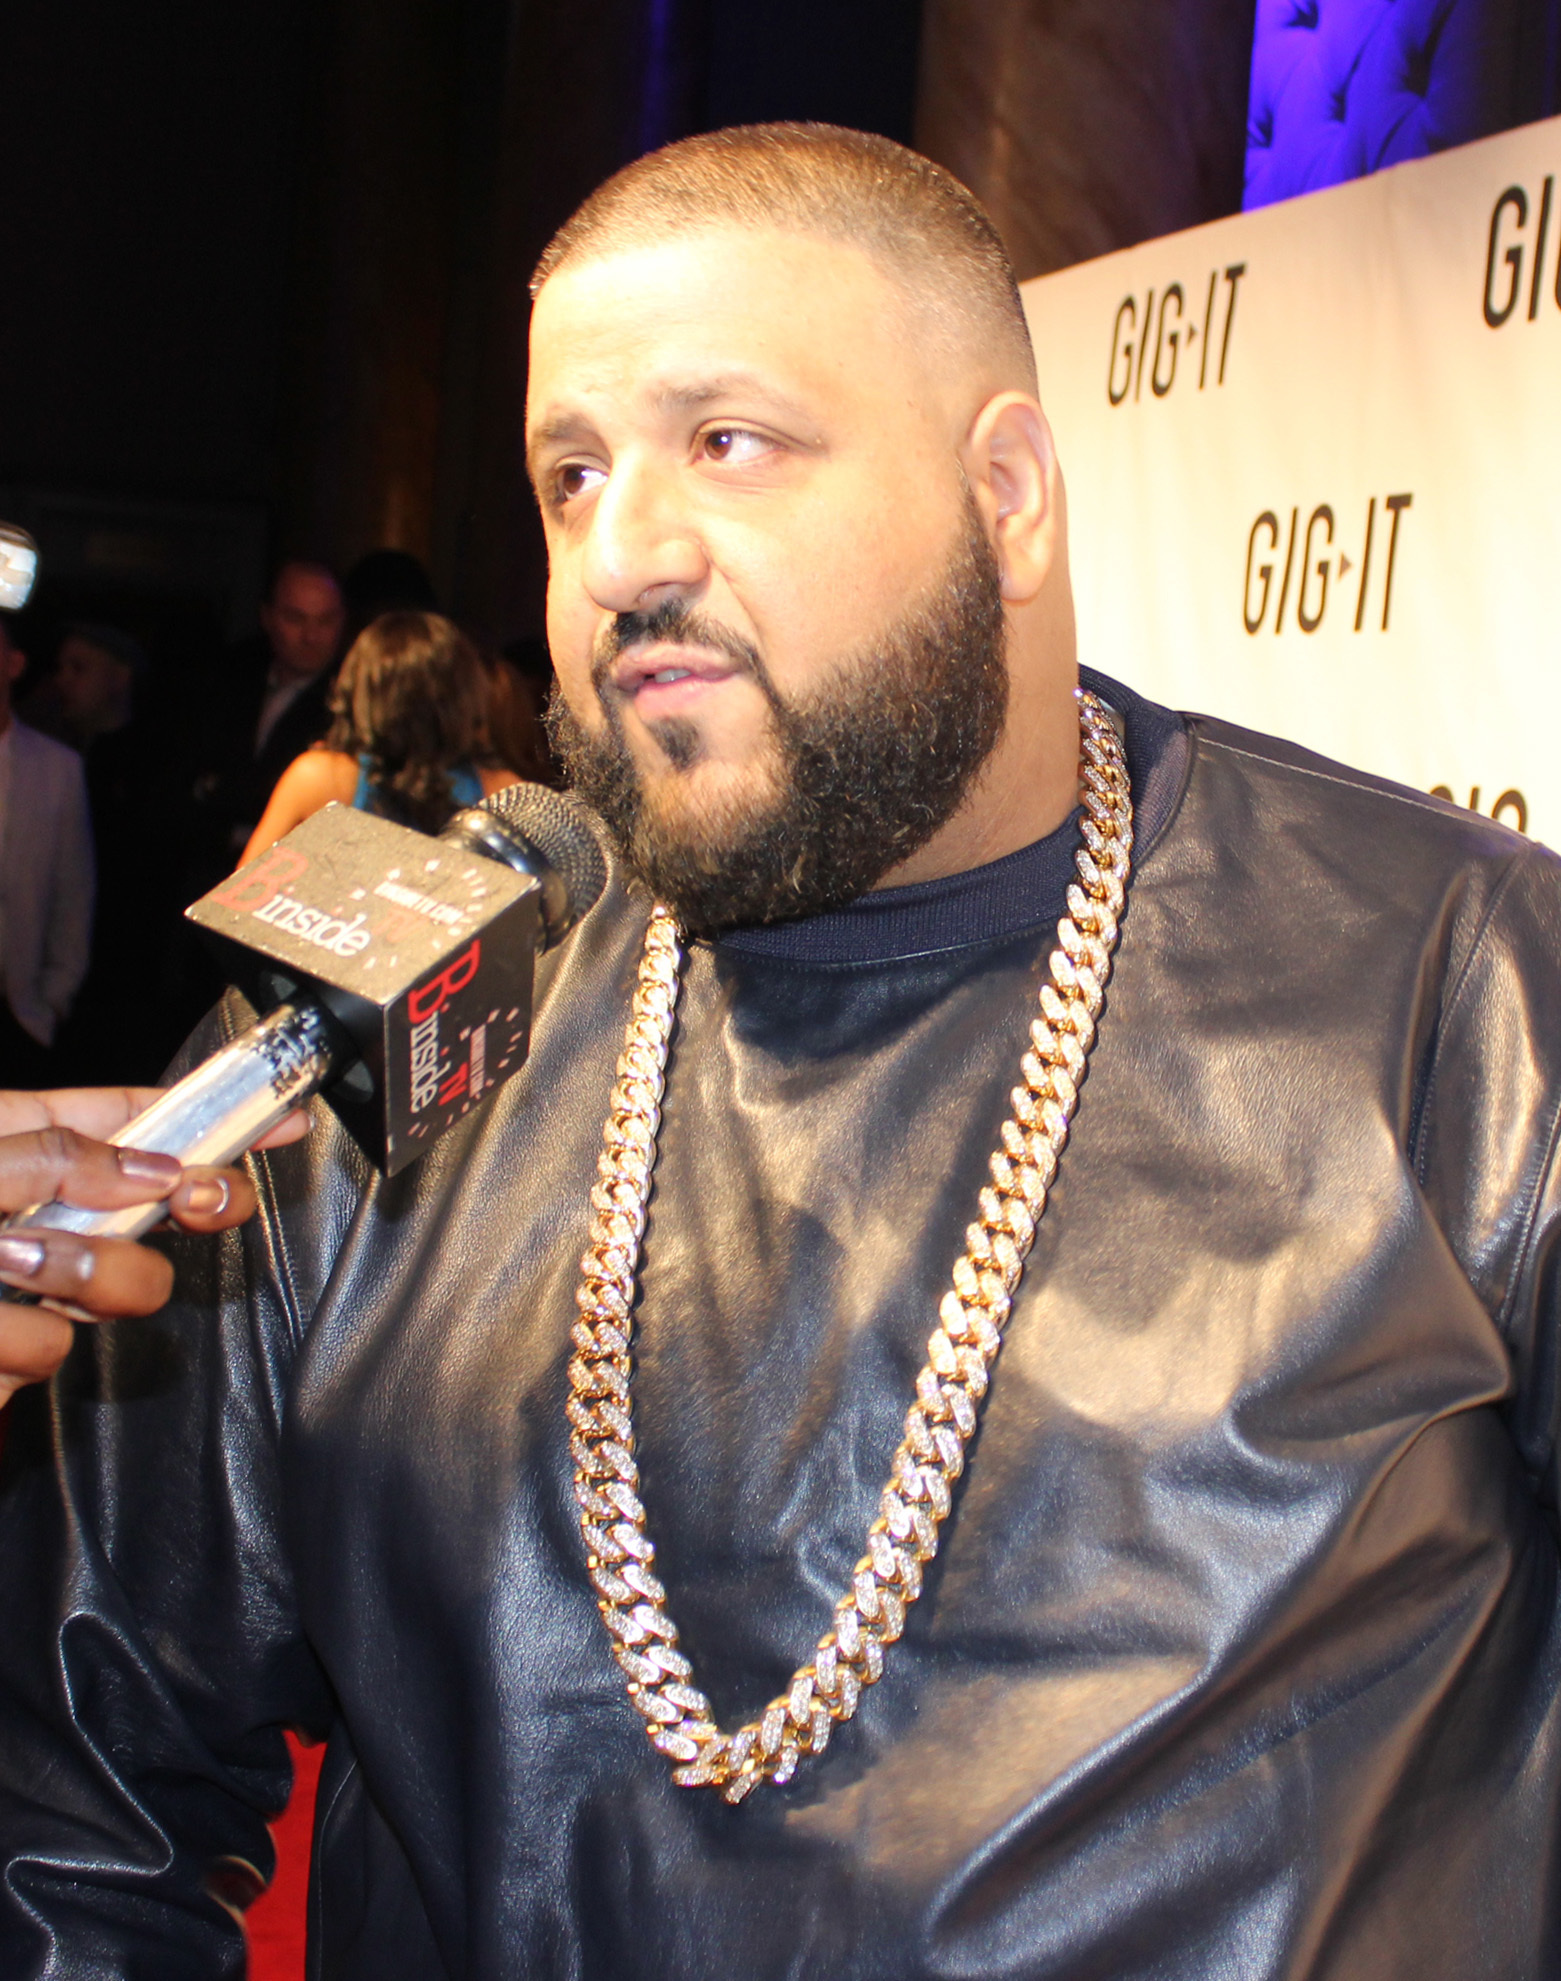 The 45-year old son of father (?) and mother(?) DJ Khaled in 2021 photo. DJ Khaled earned a  million dollar salary - leaving the net worth at  million in 2021